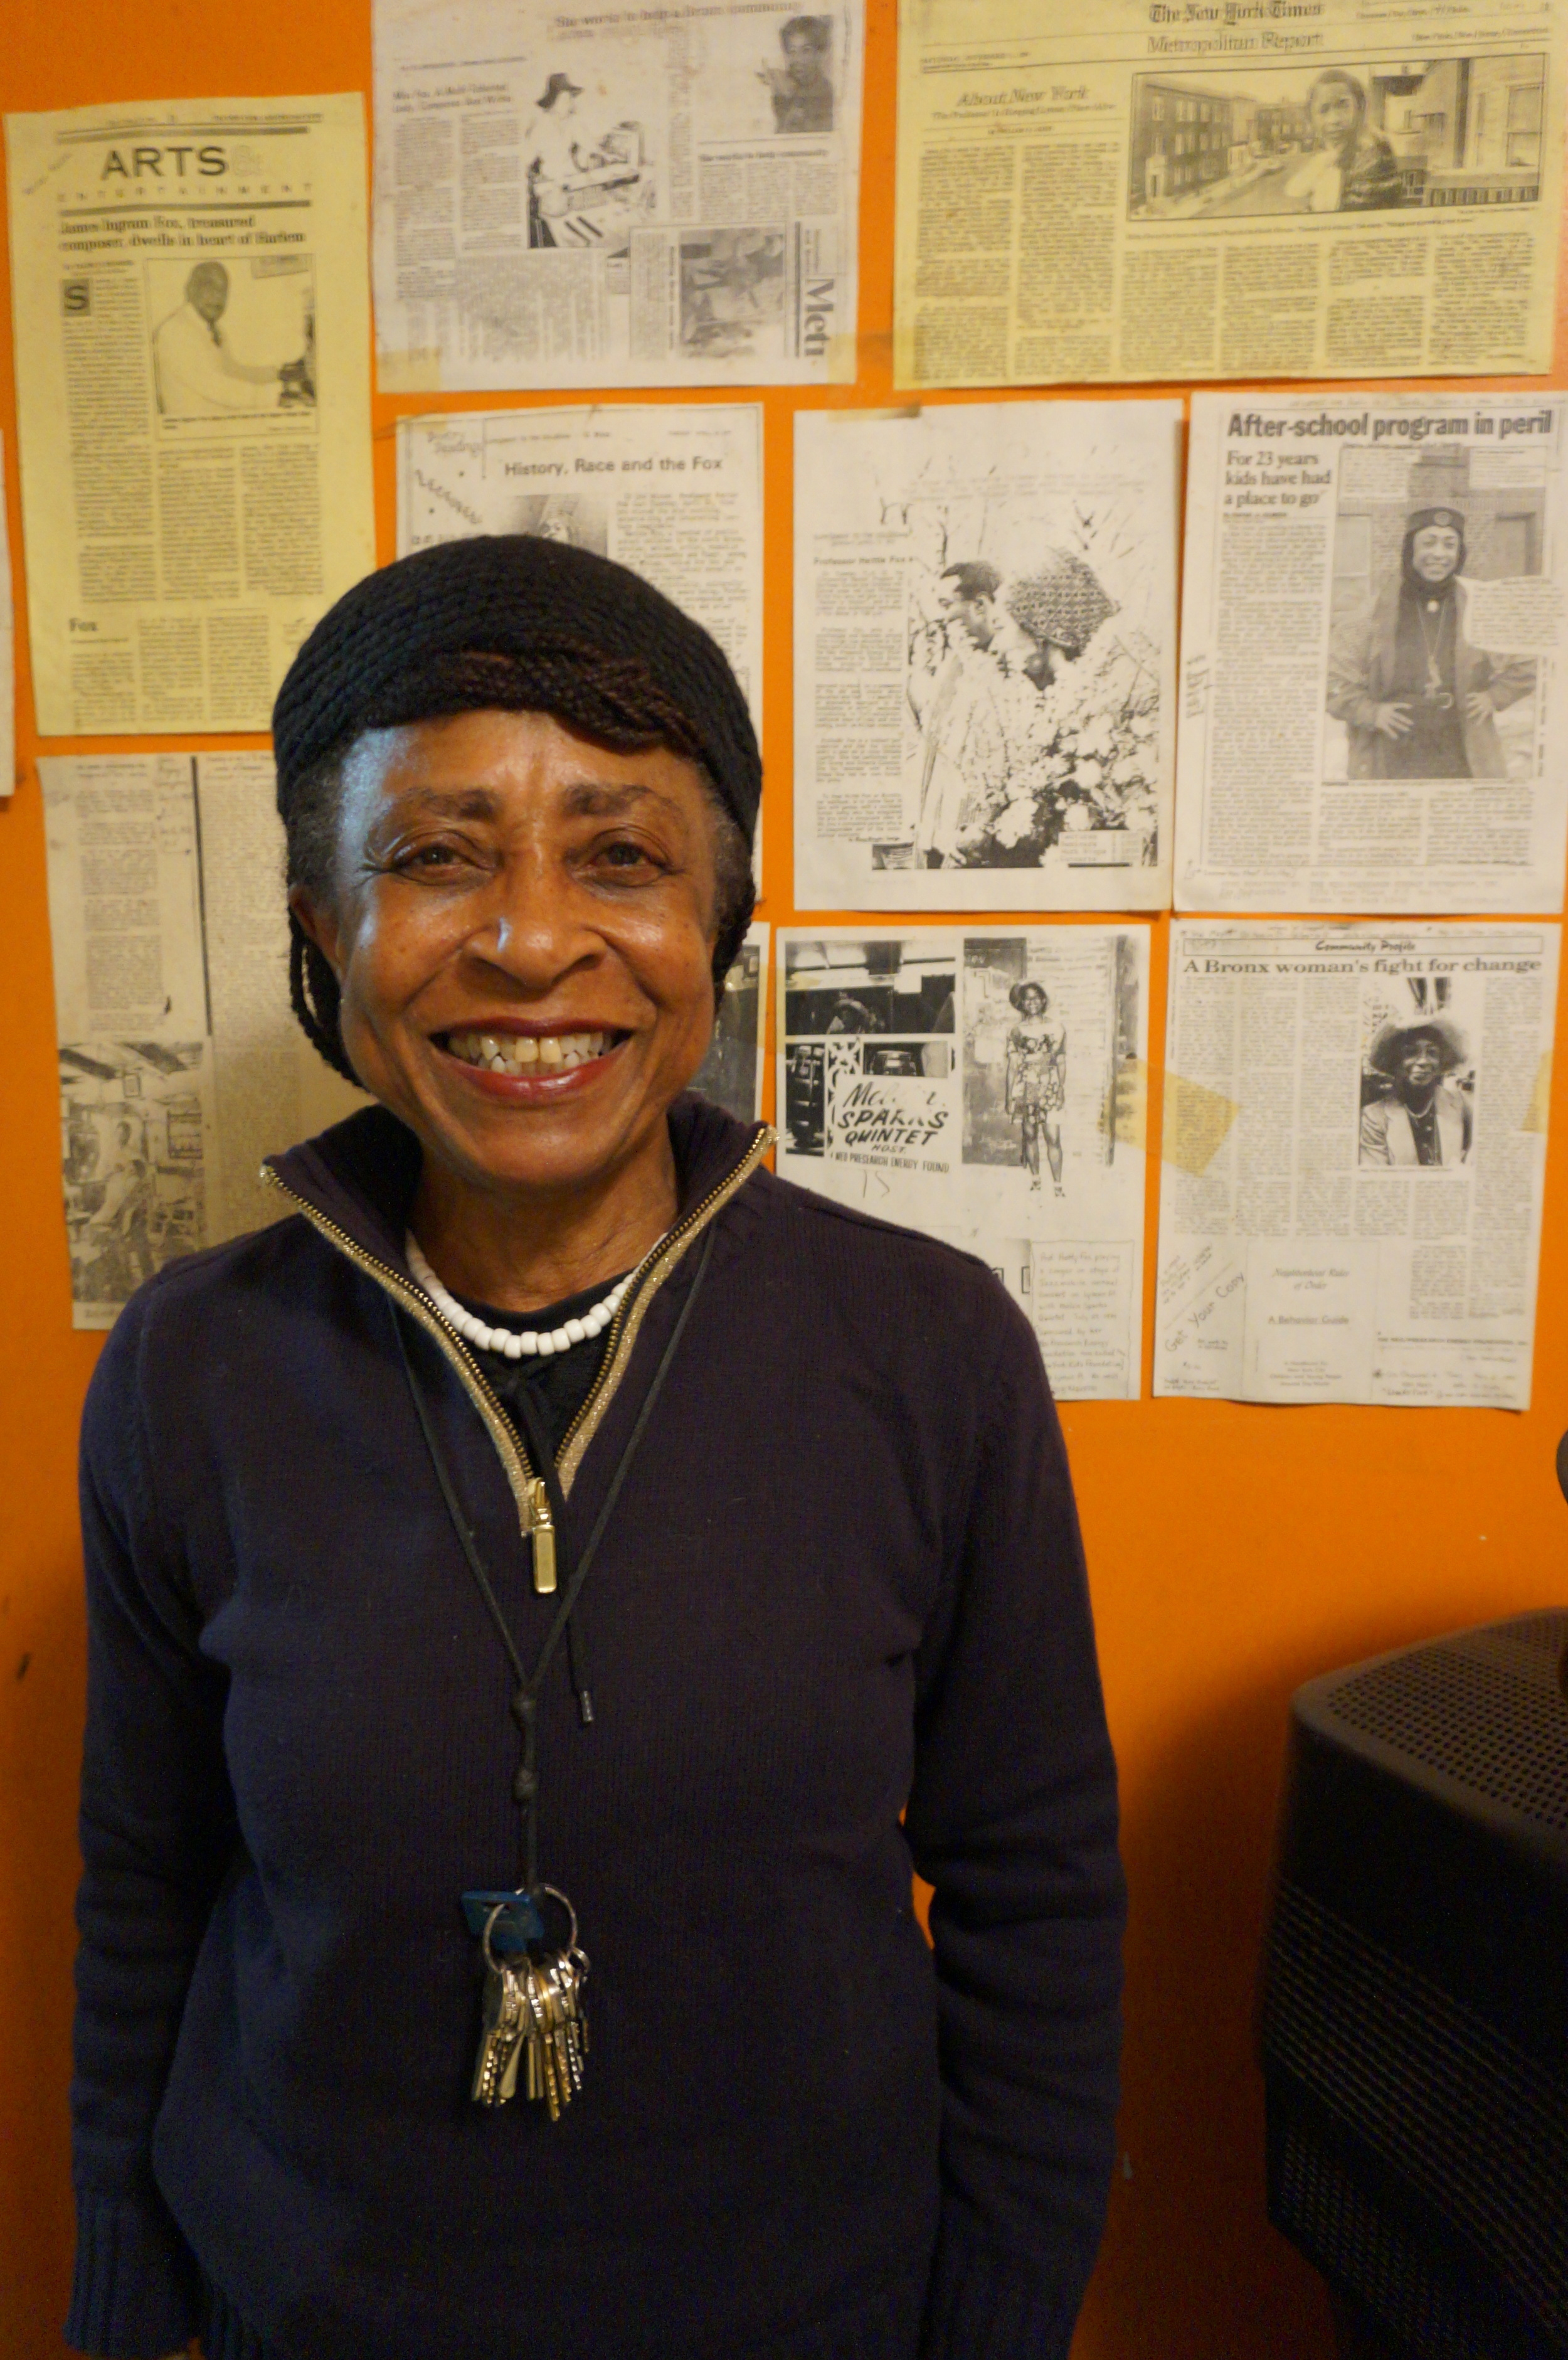 Hetty Fox, PhD, has lived on the same block in the Bronx for over 70 years. She has run a community play street on herblock for over 37 years. She is an activist, a conga player, and a visual artist.